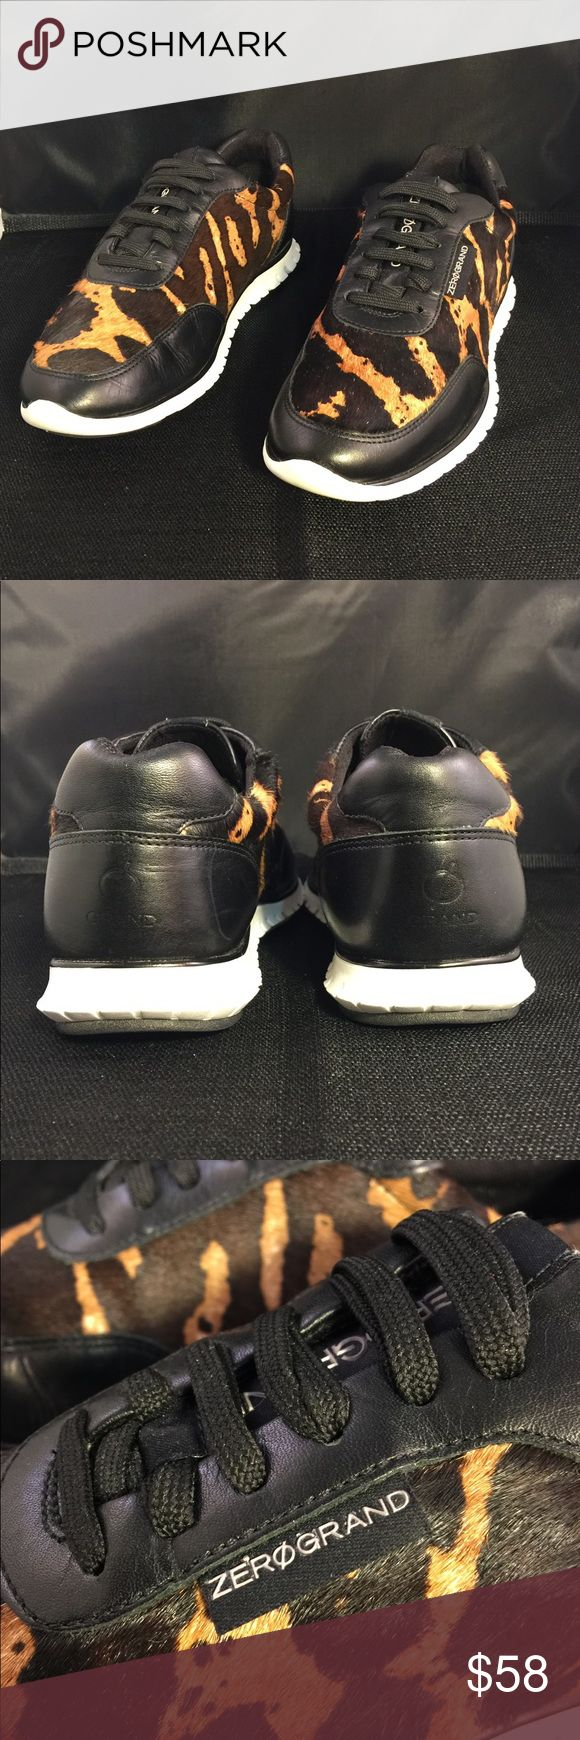 """Authentic """"Zero Grand"""" sneakers These size 7 1/2 pair of ZeroGrand GRAND.OS by Cole Haan is the perfect shoe for looks and miles of comfort. Originally priced at $149.99, these can be yours for just $58.00 today. ZeroGrand Shoes Sneakers"""